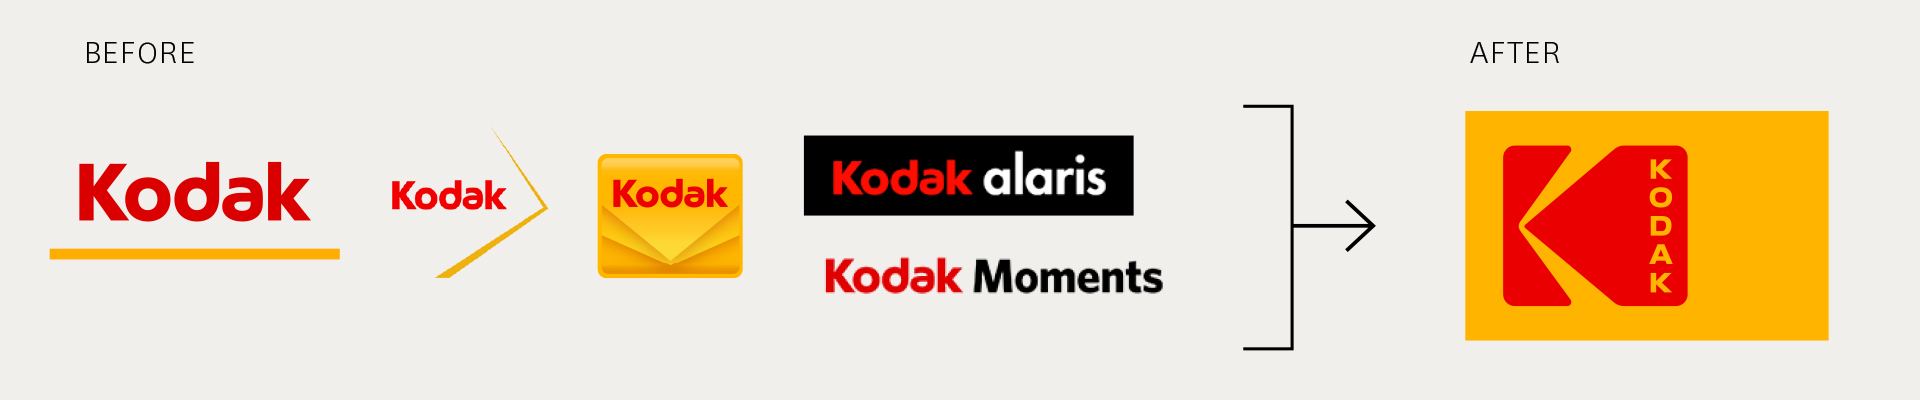 Kodak logo before after